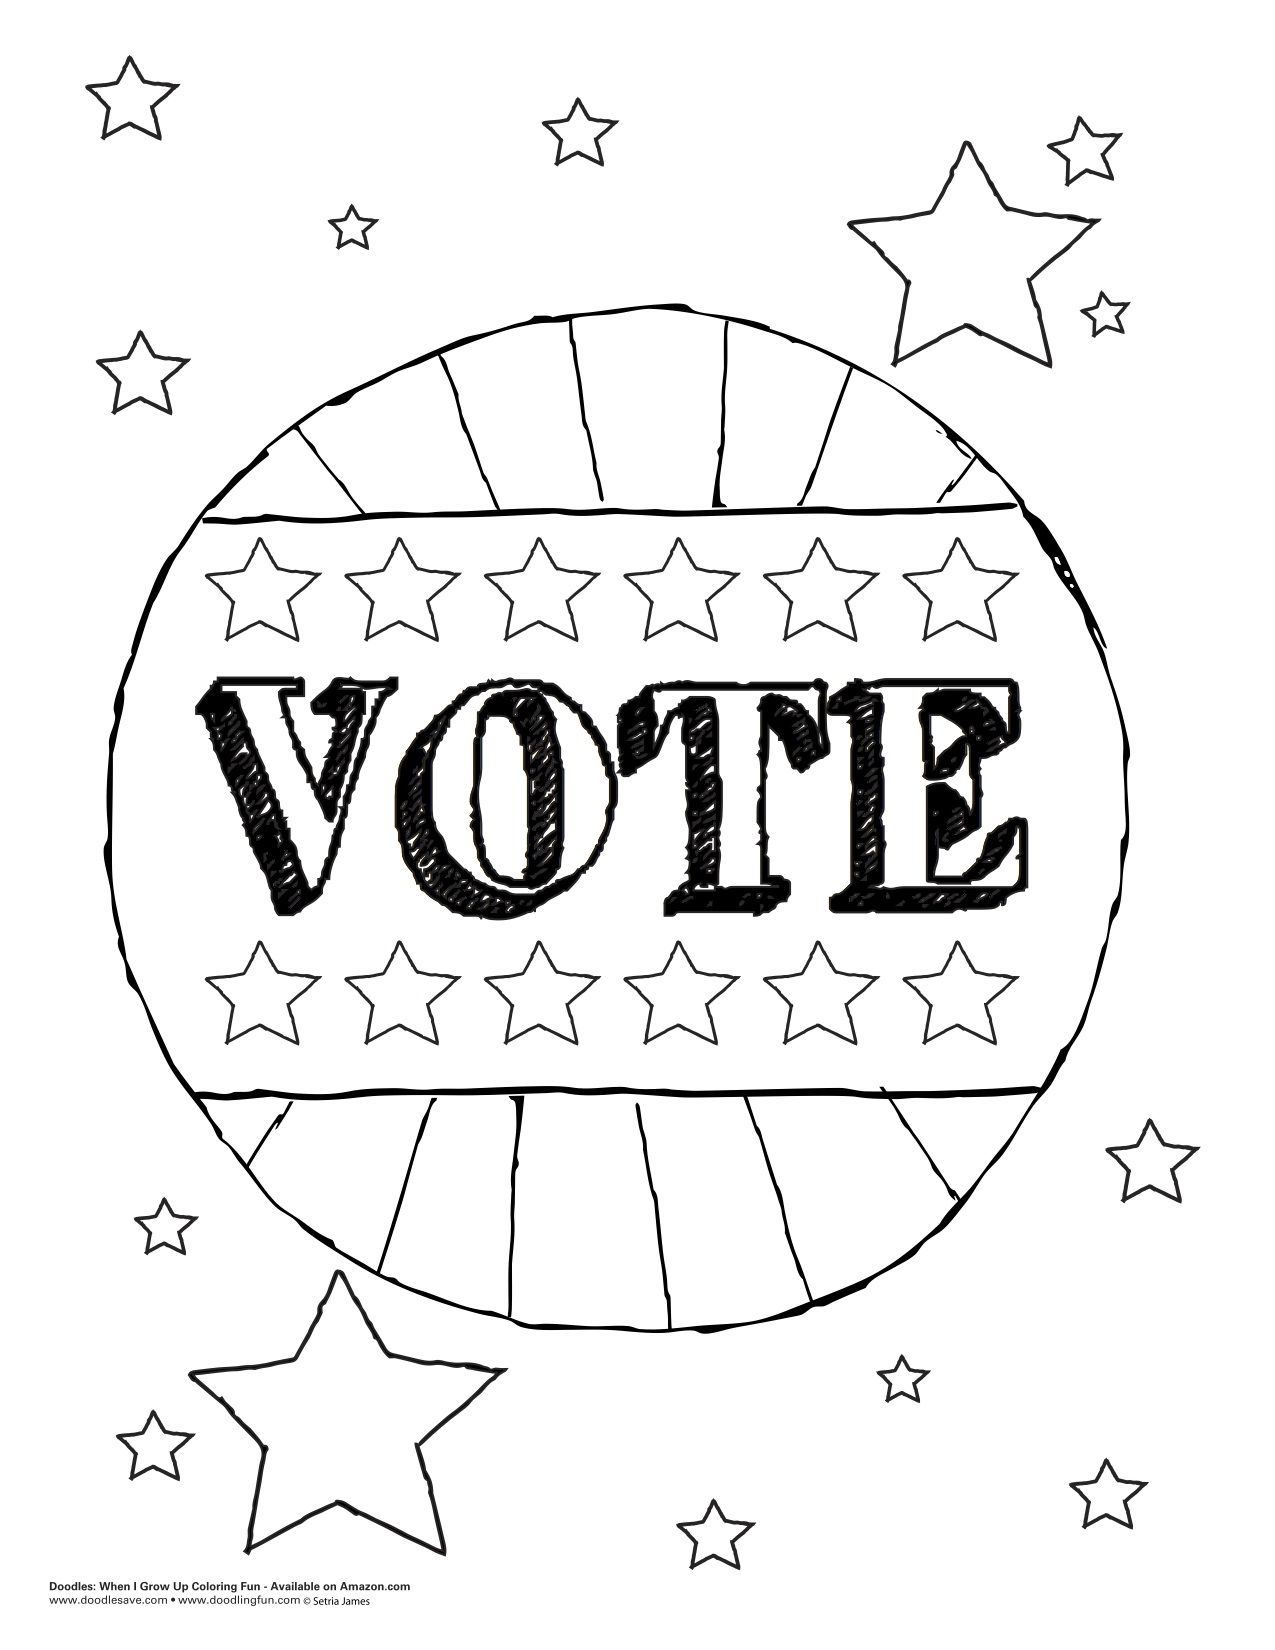 exercise your right government vote coloring kids starsandstripes - Coloring Exercises